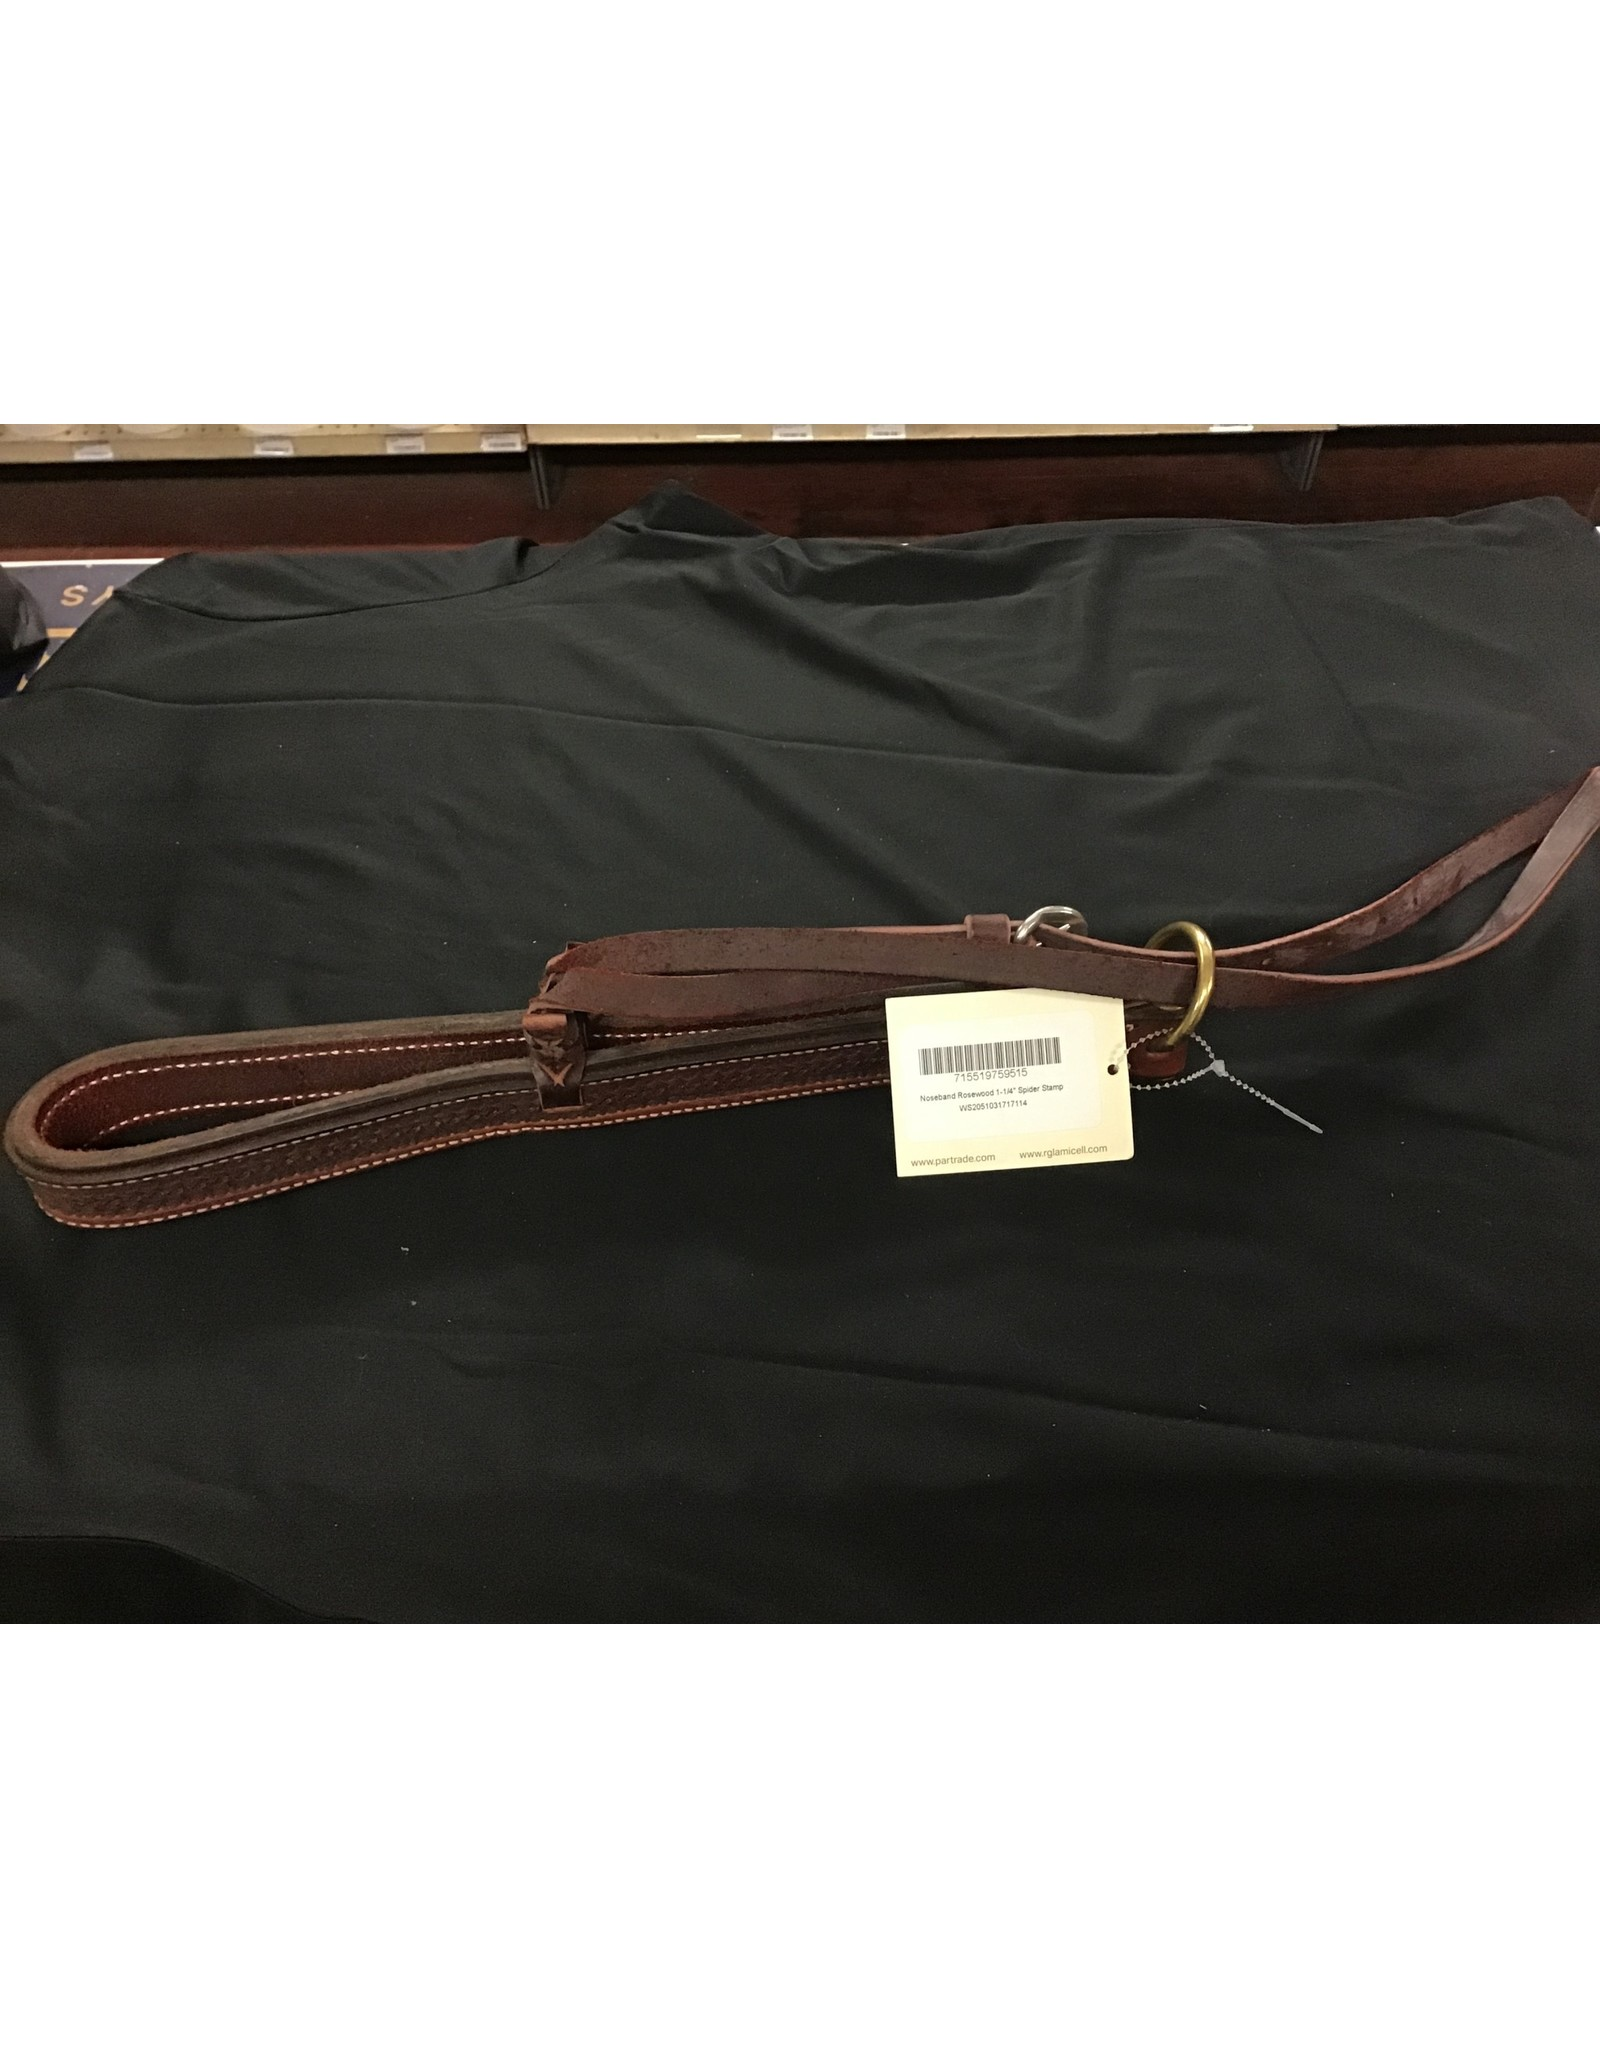 Partrade Noseband, Rosewood Spider Leather